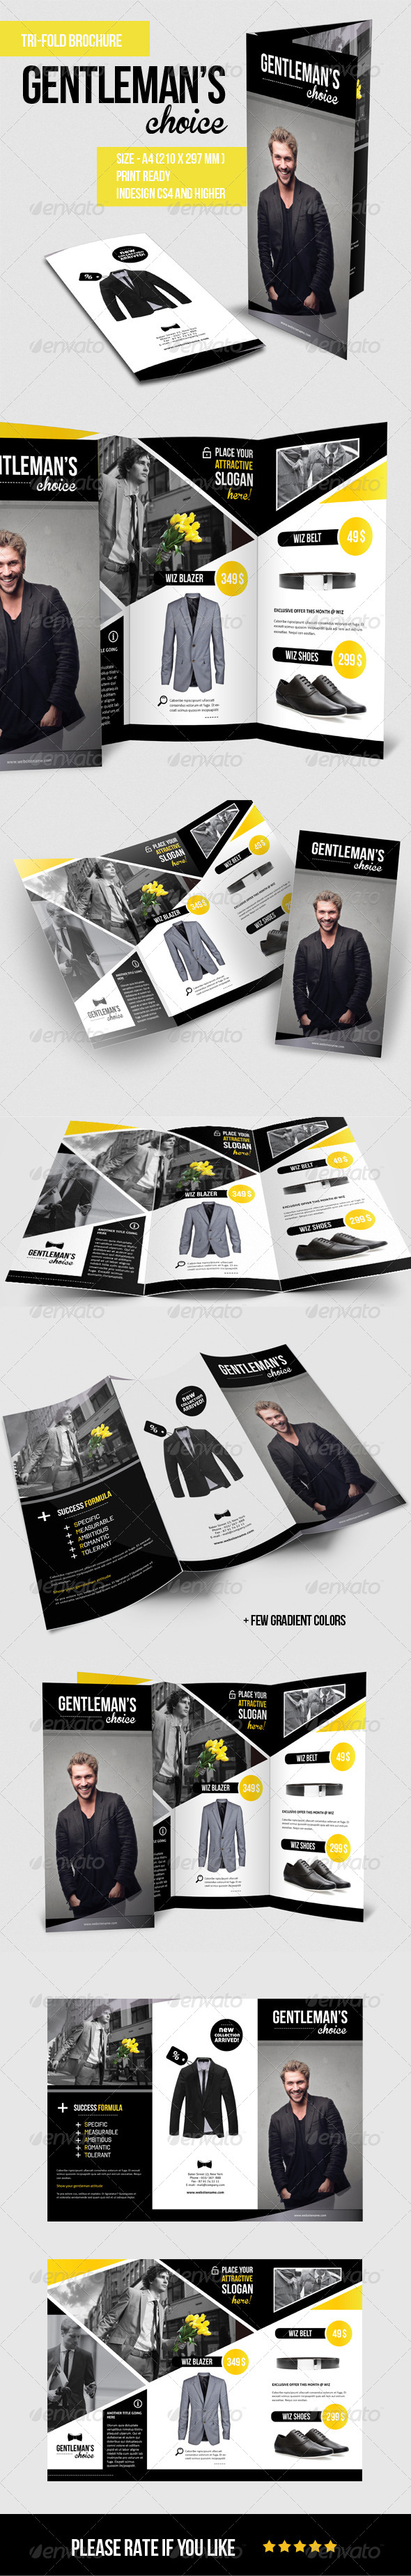 GraphicRiver Gentleman s Choice Tri-fold Brochure 5551503